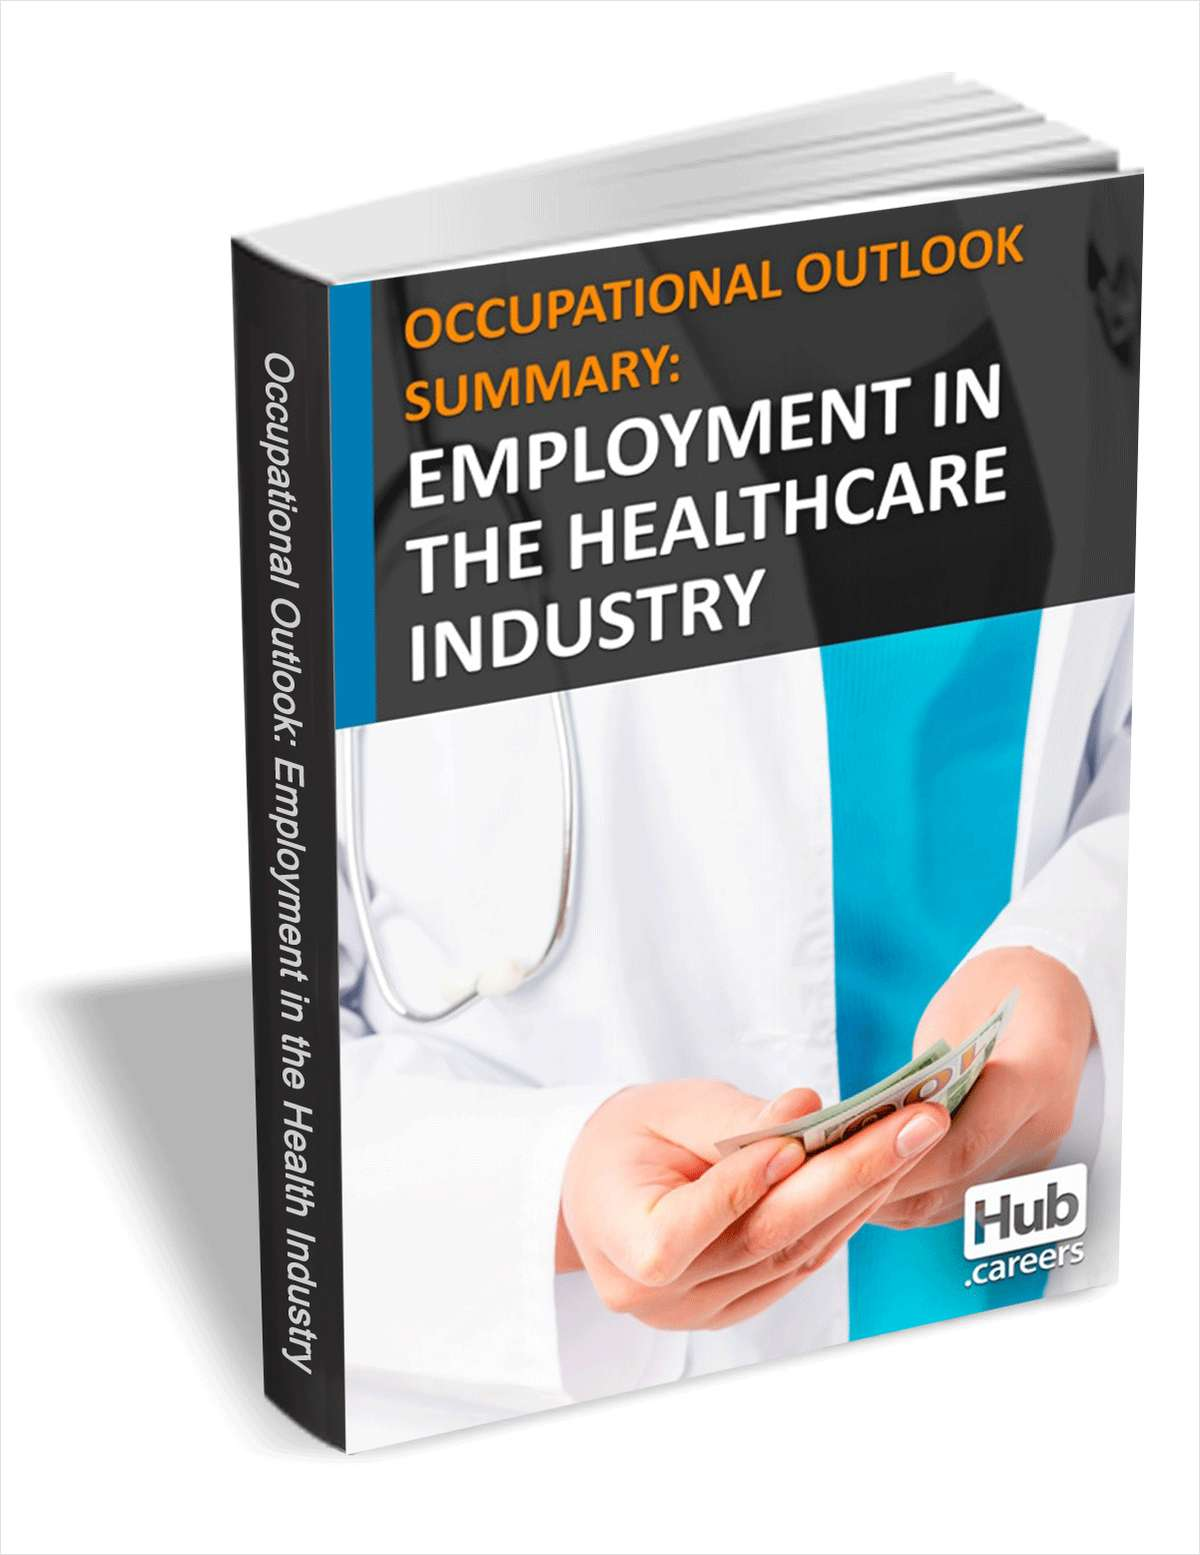 Employment in the Healthcare Industry - Occupational Outlook Summary